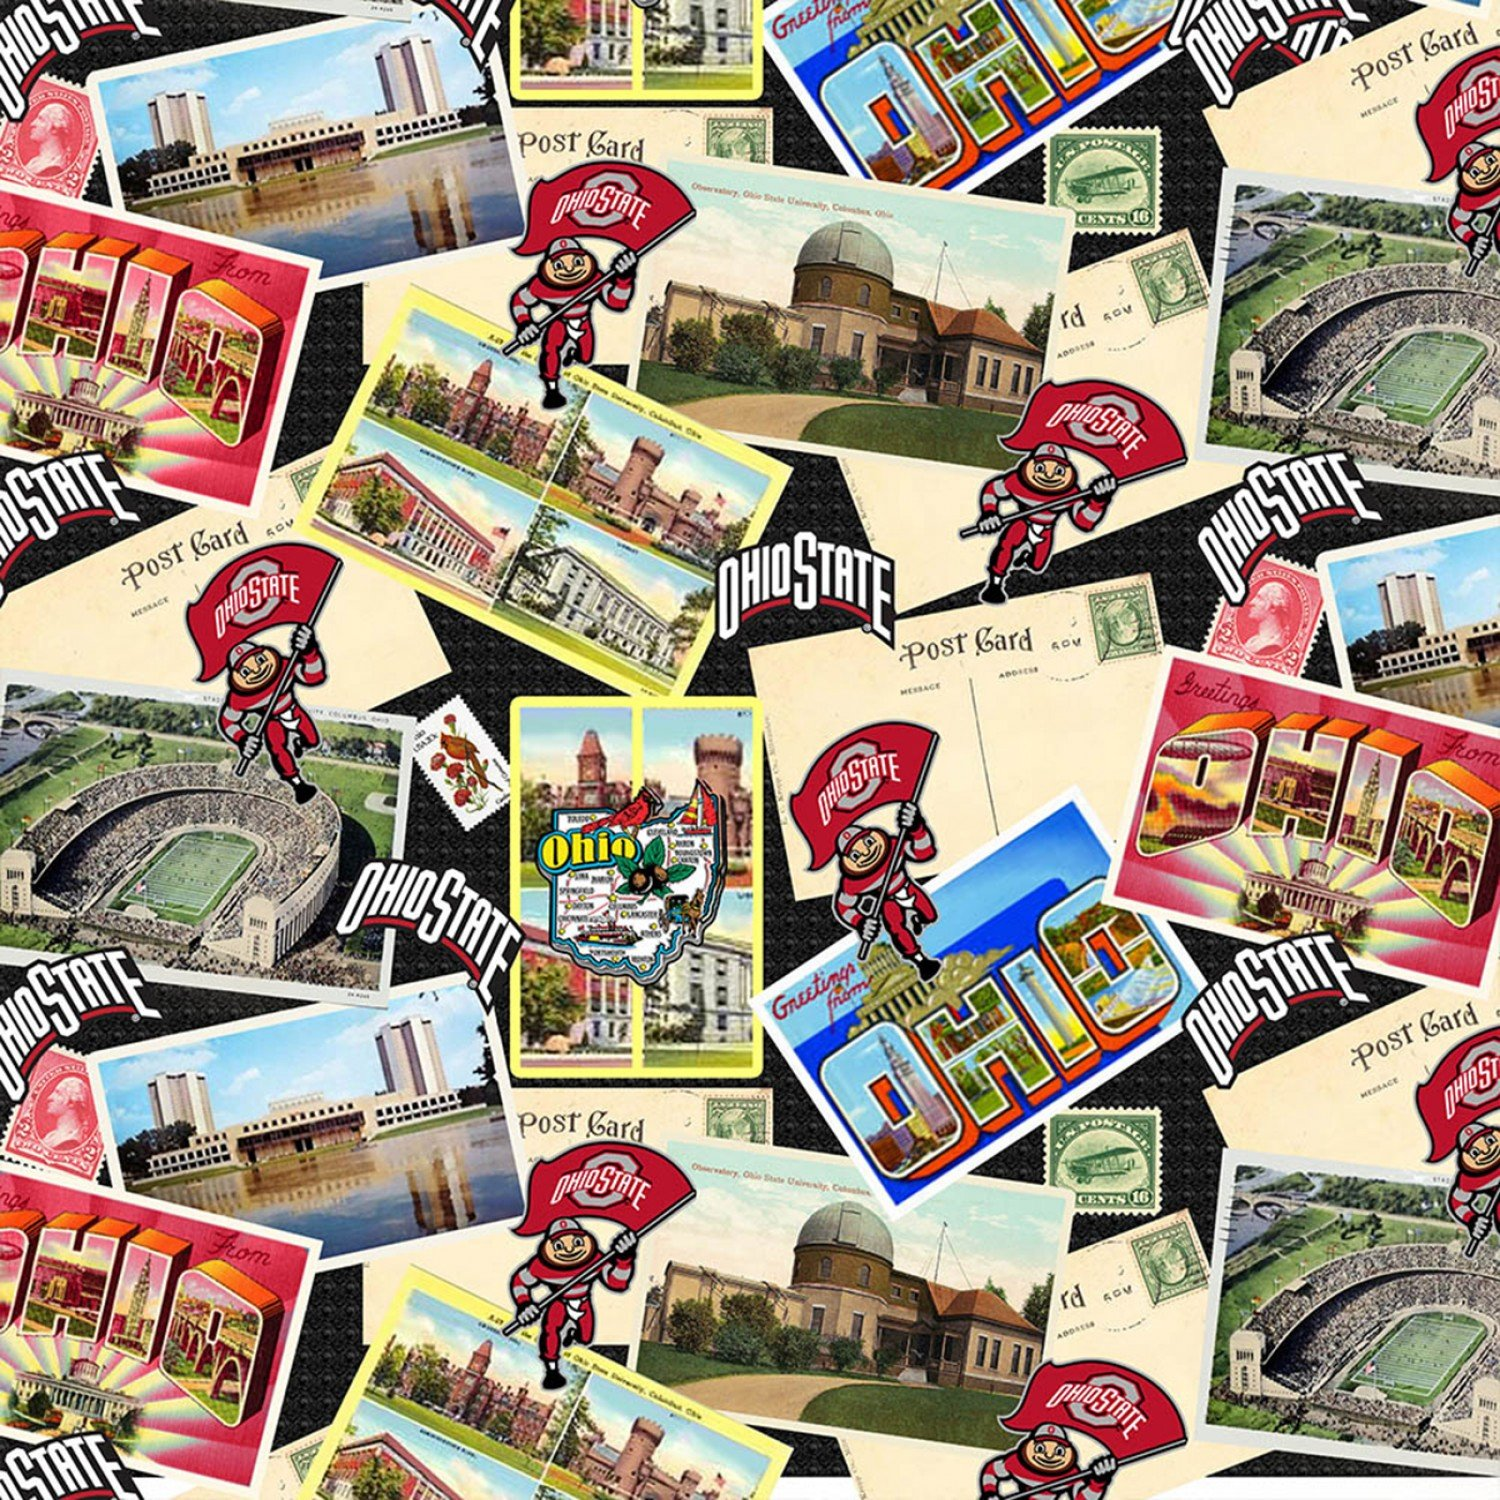 OHS-1211 Ohio State Buckeyes Scenic Postcards